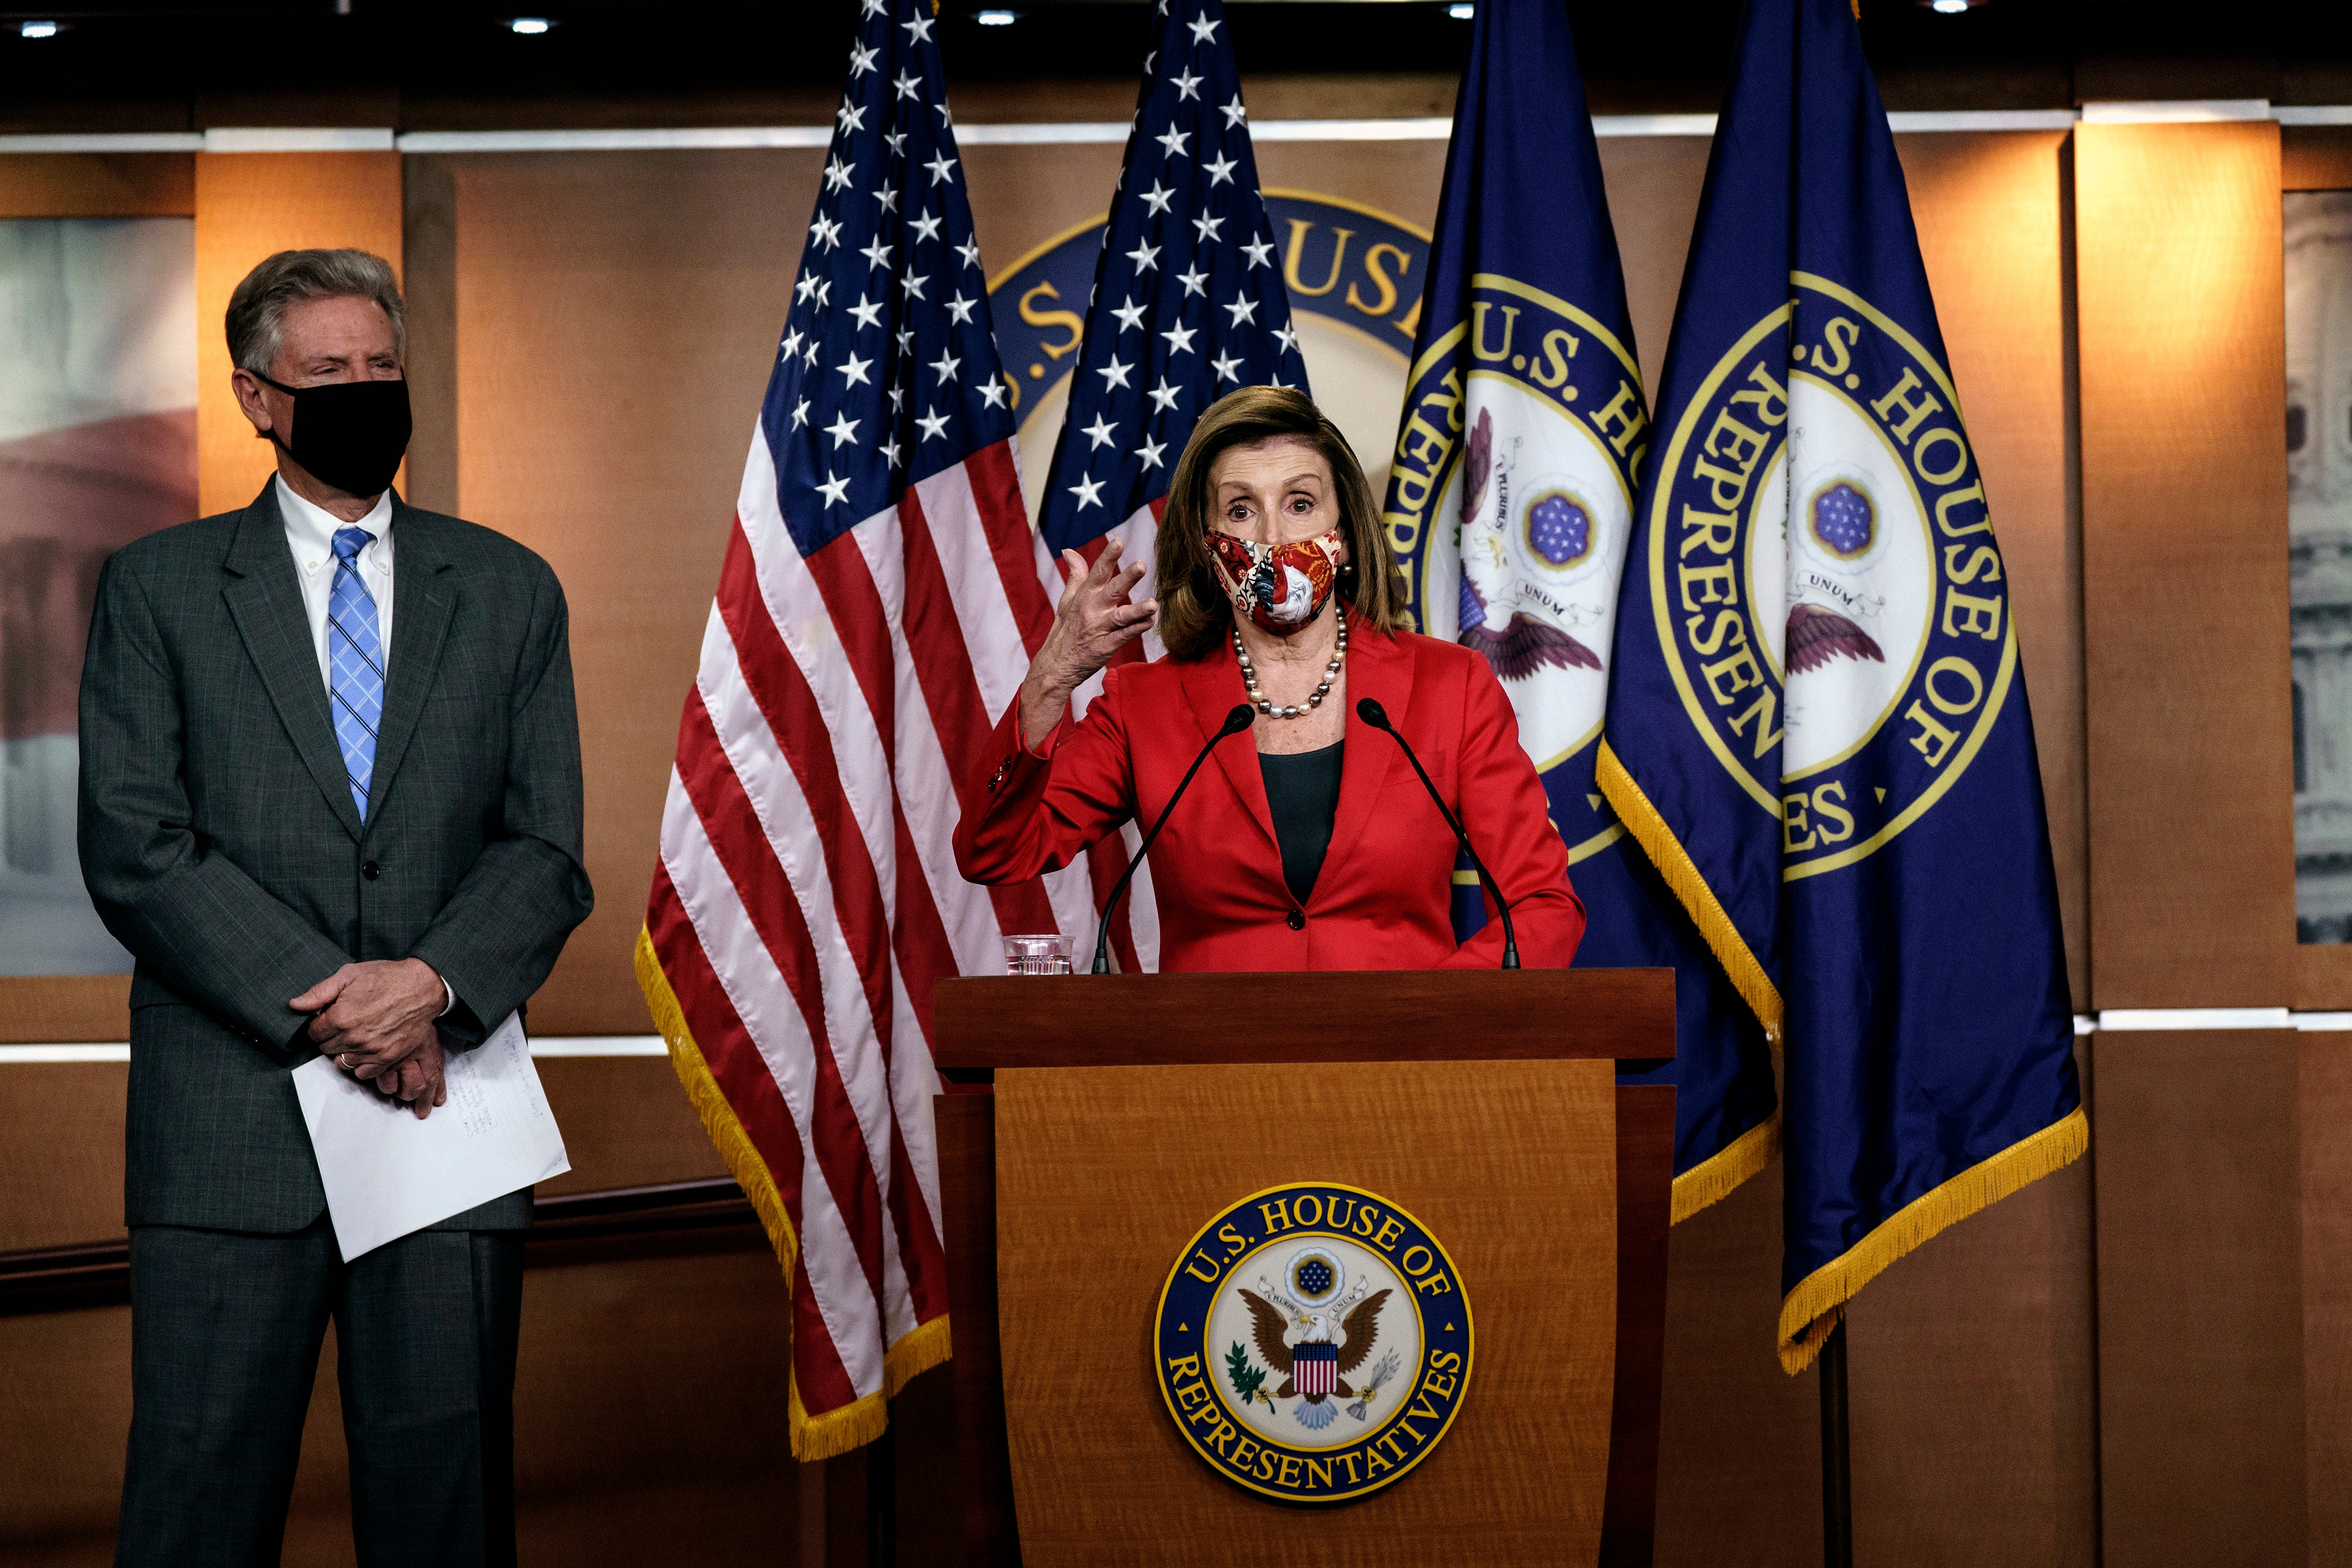 Dems clinch House control, but majority likely to shrink Republican Nancy Pelosi Democrats house Cheri Bustos